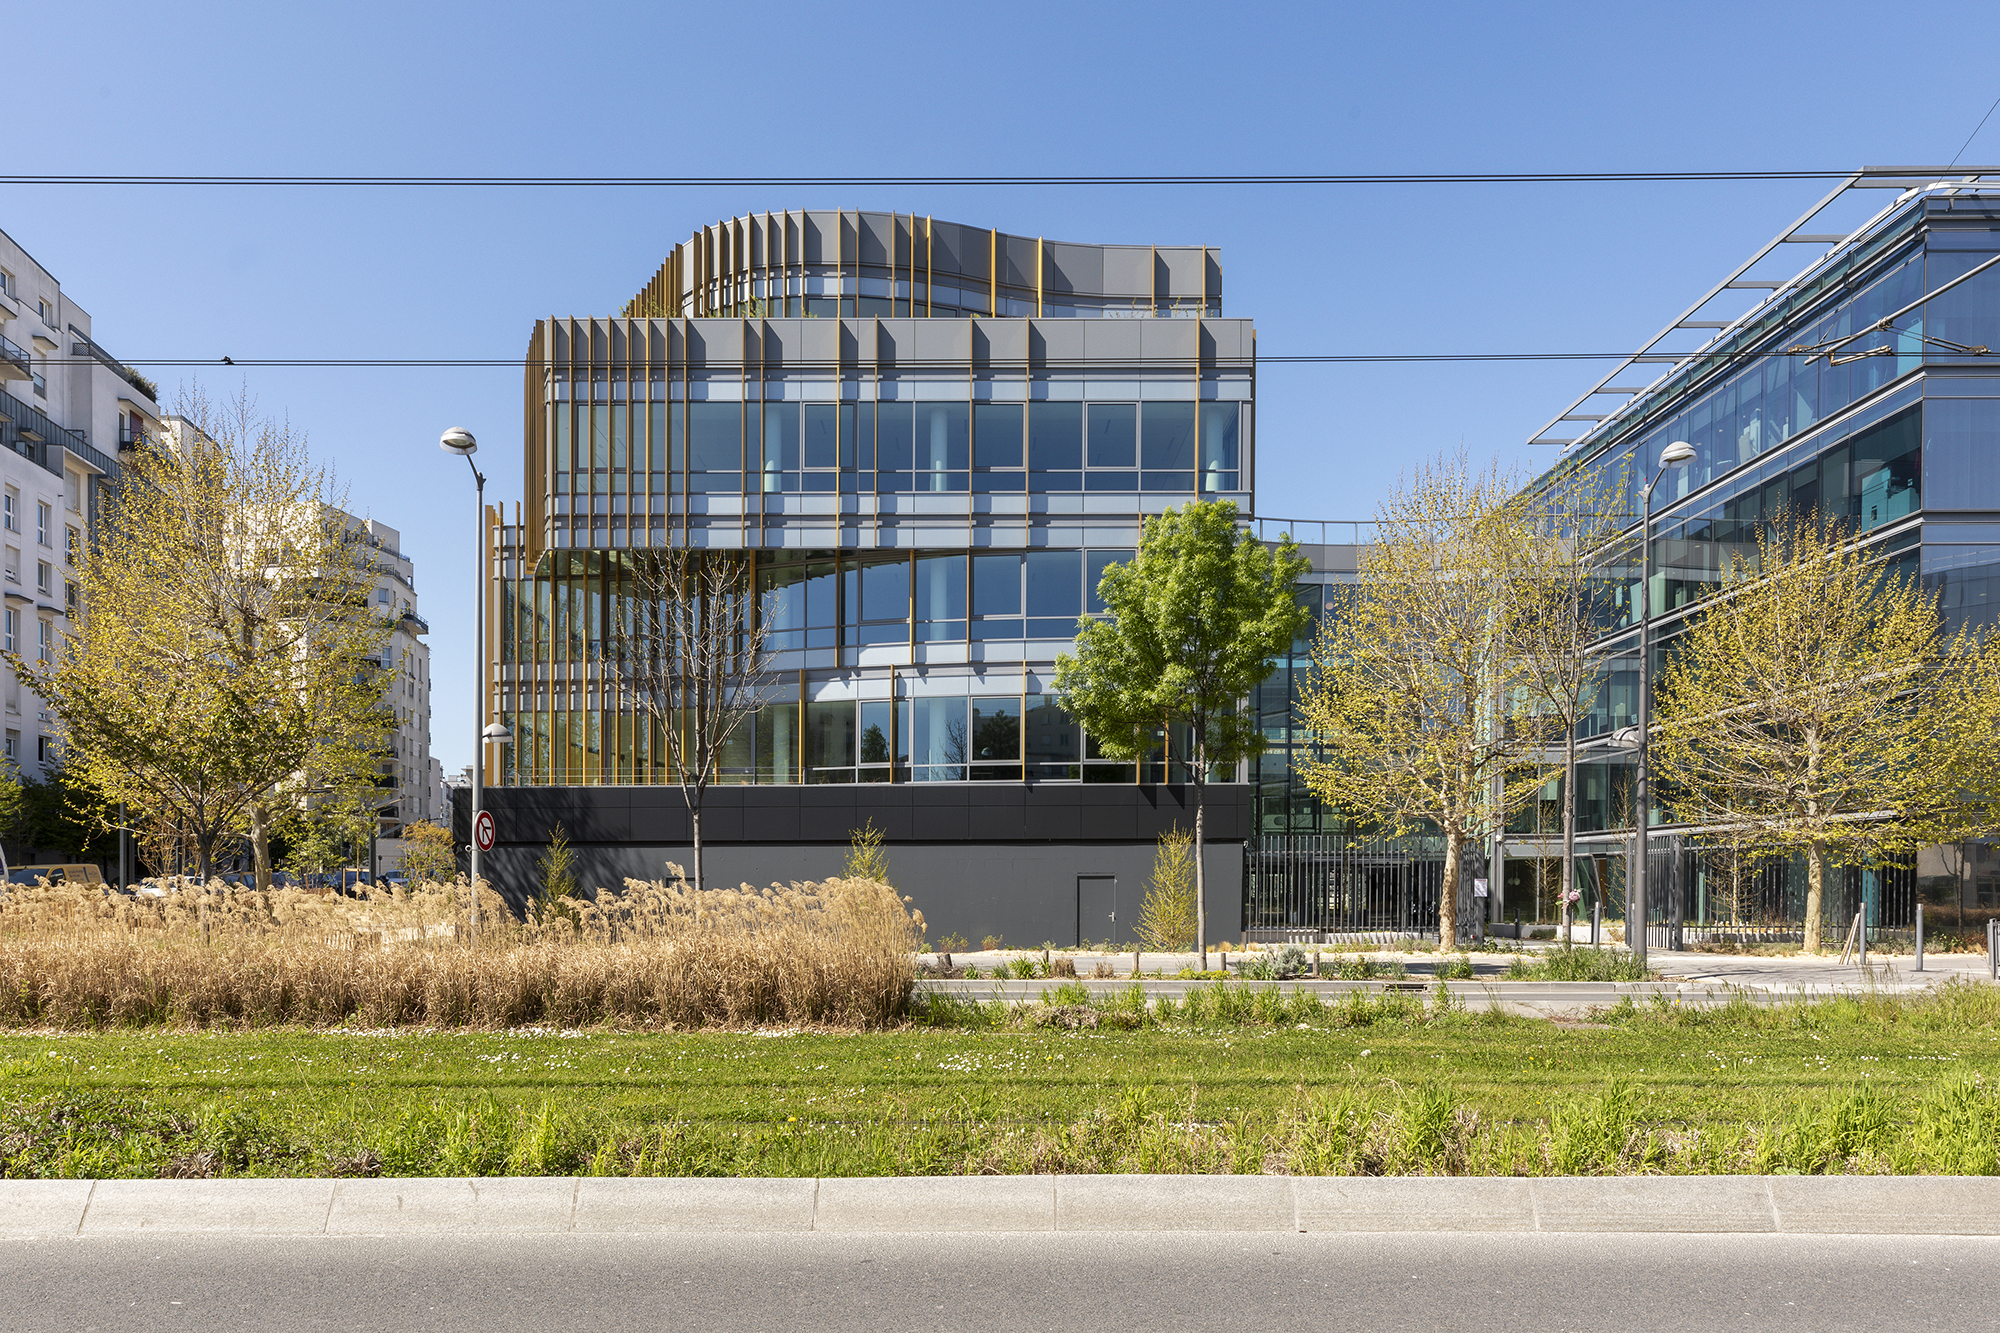 Mission Marchand Courbevoie ORY architecture